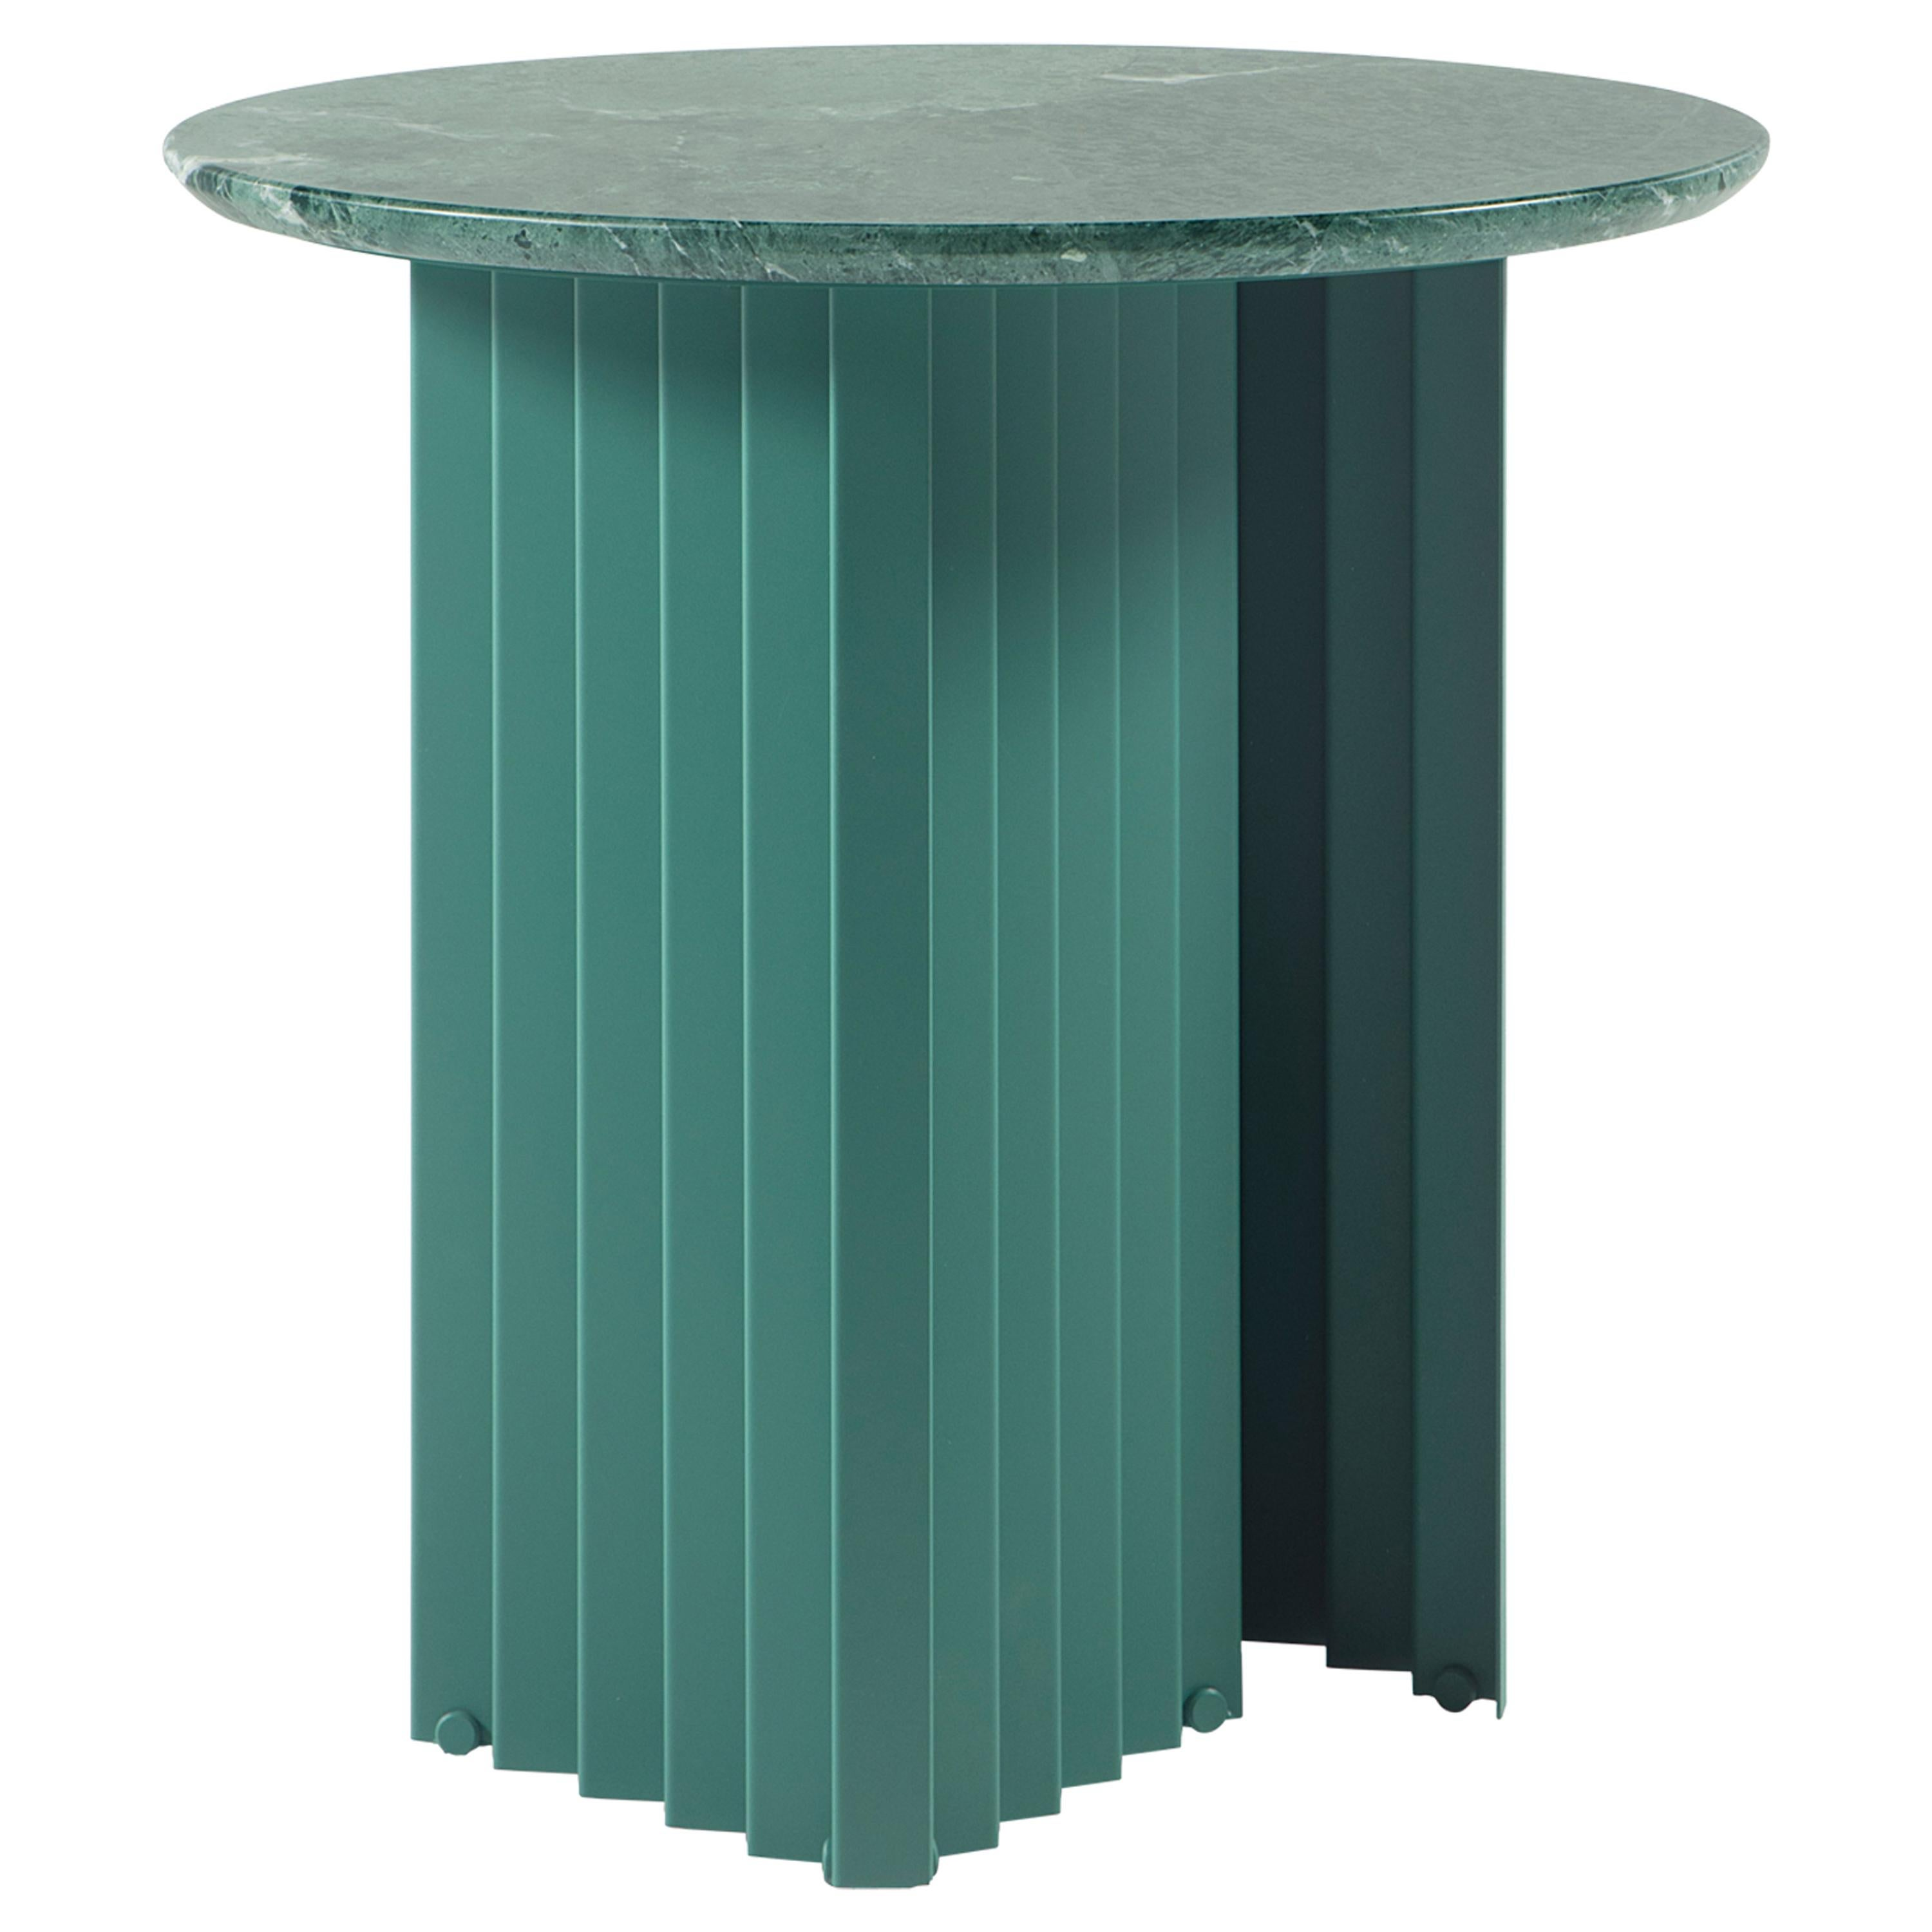 RS Barcelona Plec Round Small Table in Green Marble by A.P.O.